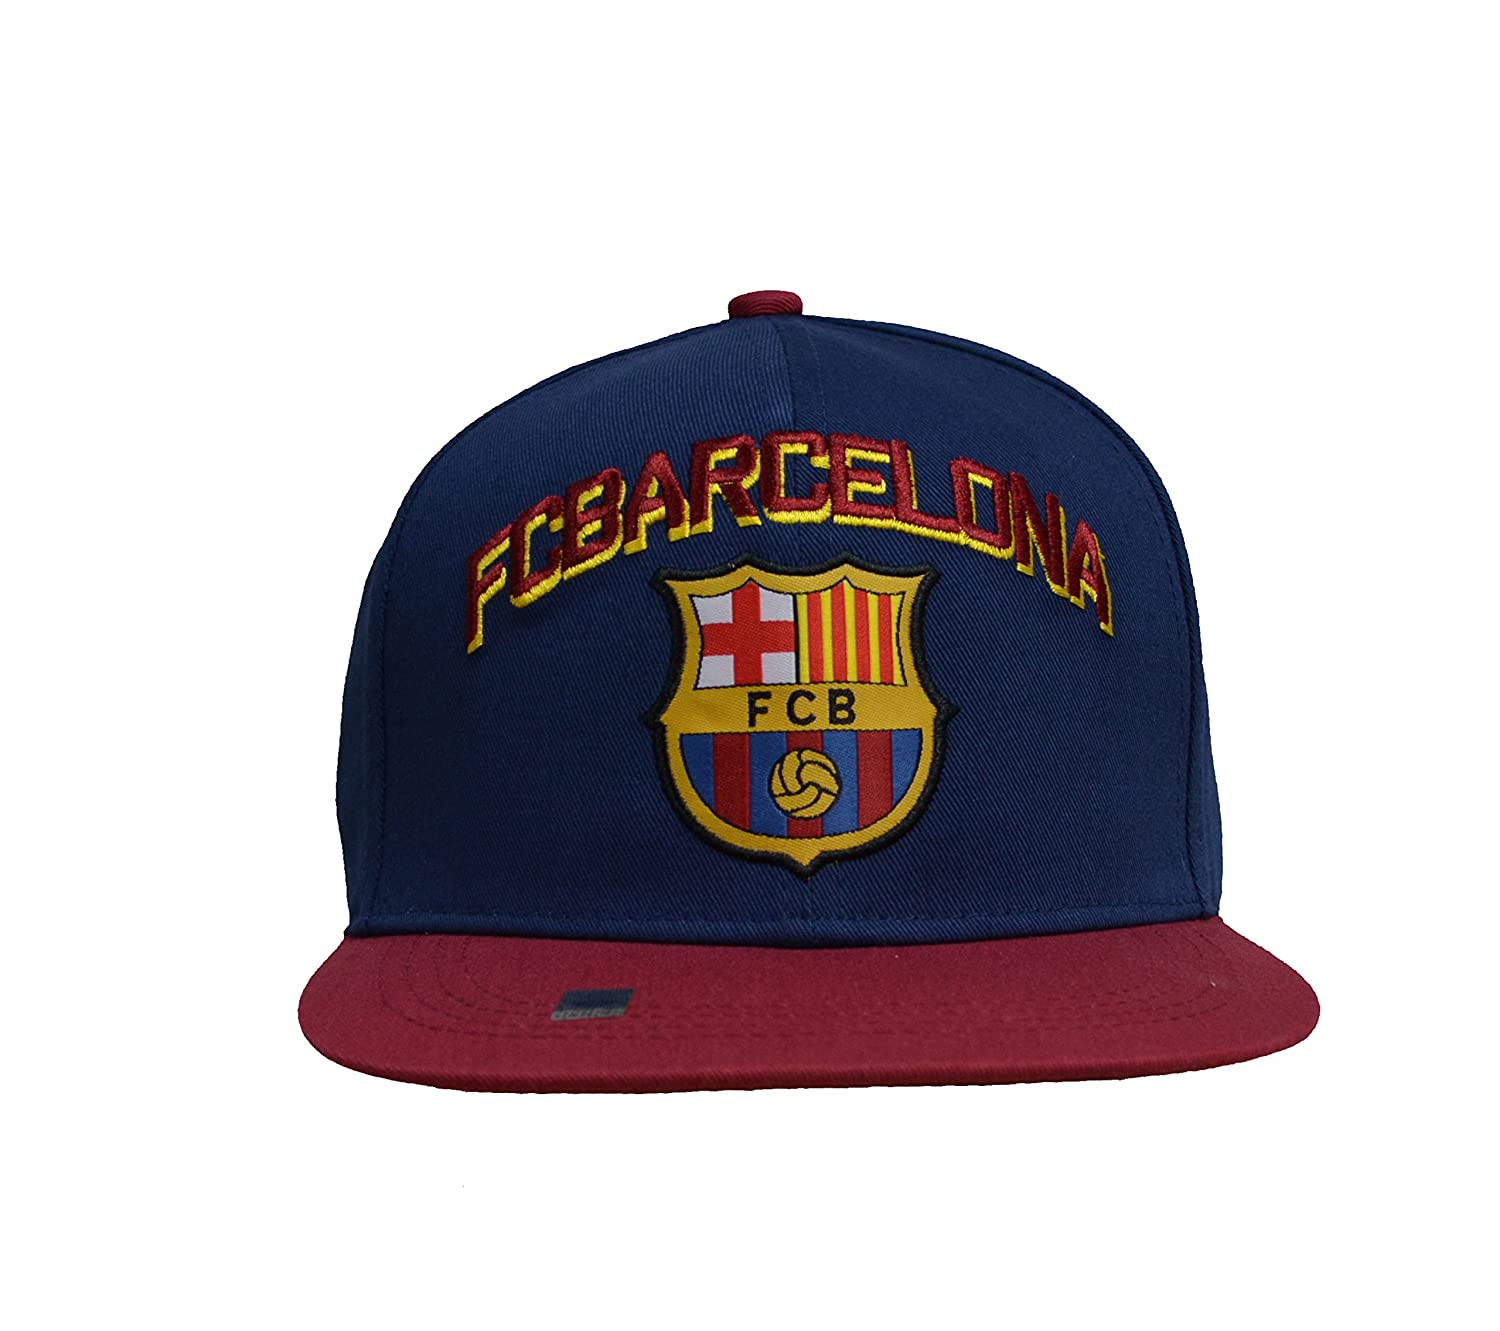 Amazon.com   Fc Barcelona Snapback Adjustable Cap Hat - Blue - Maroon -Red  New Season   Sports   Outdoors d82703bb2fc